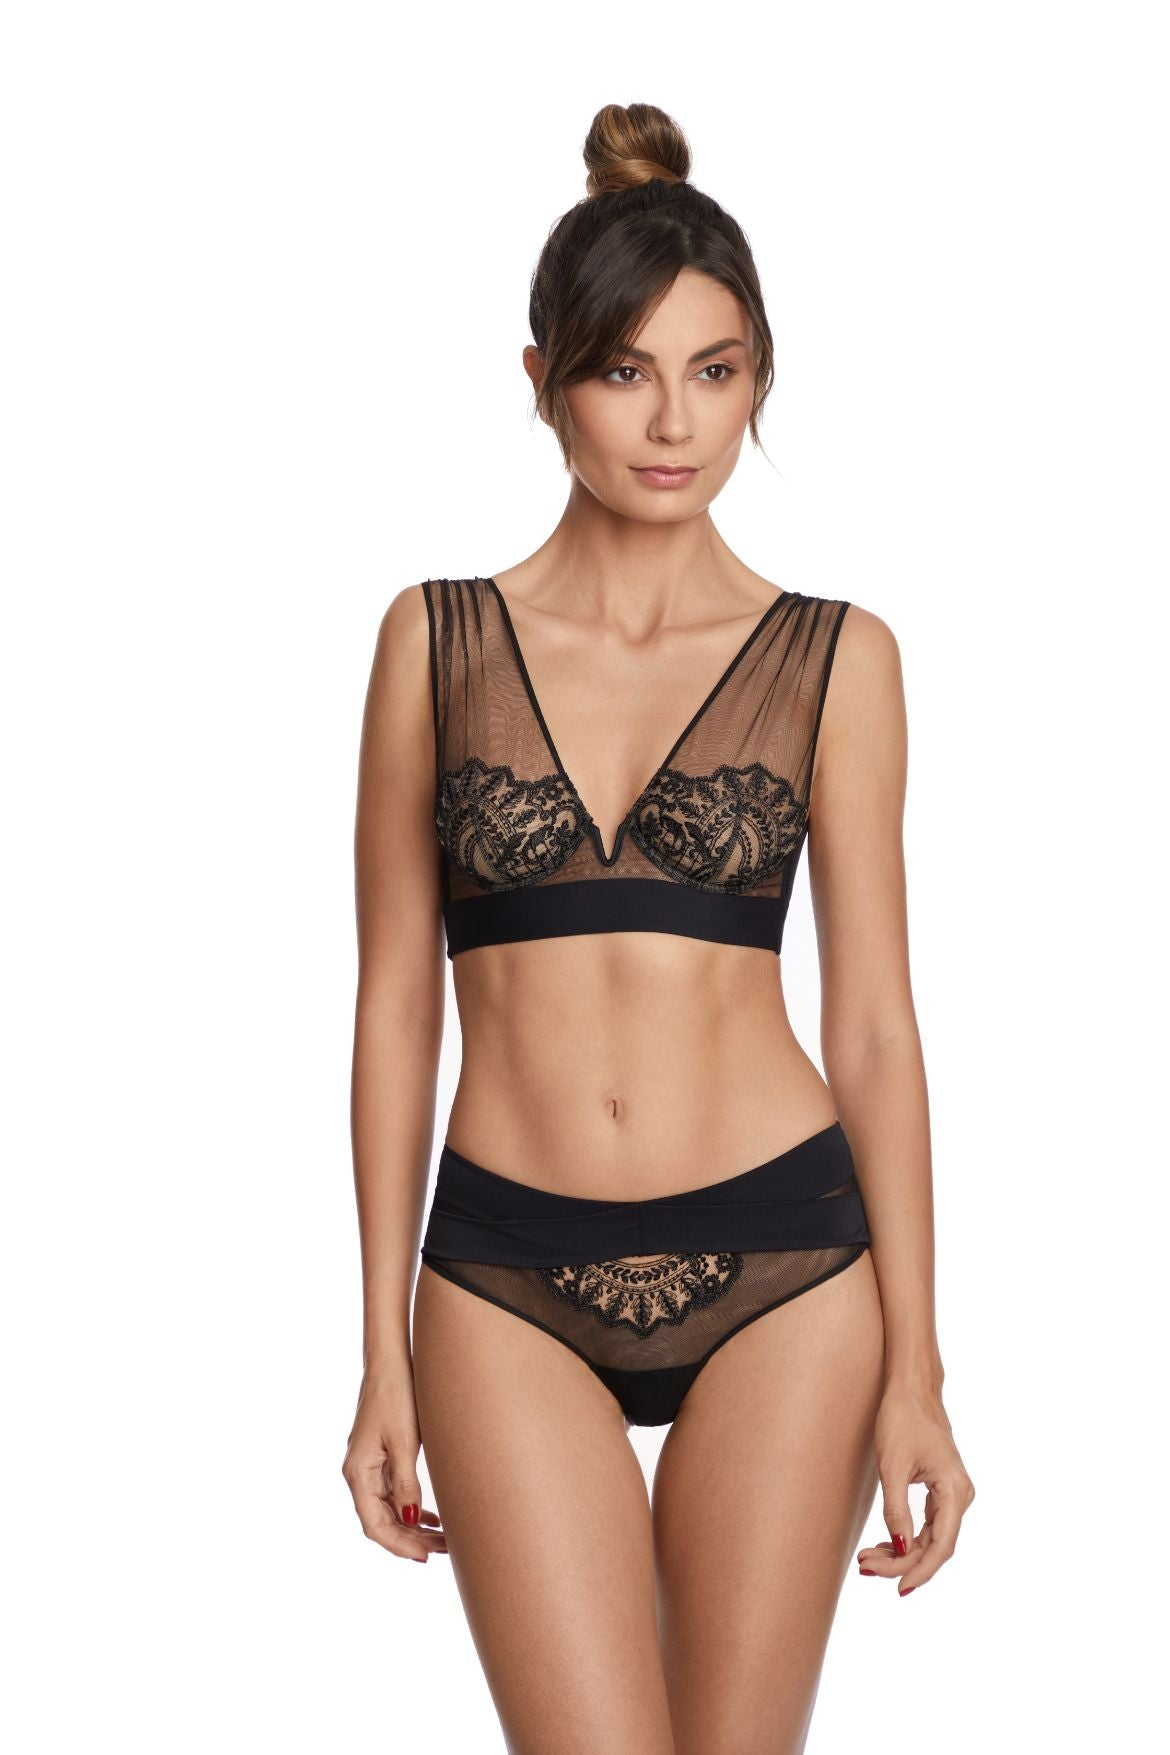 I.D. Sarrieri embroidered tulle black soft cup bra and brief